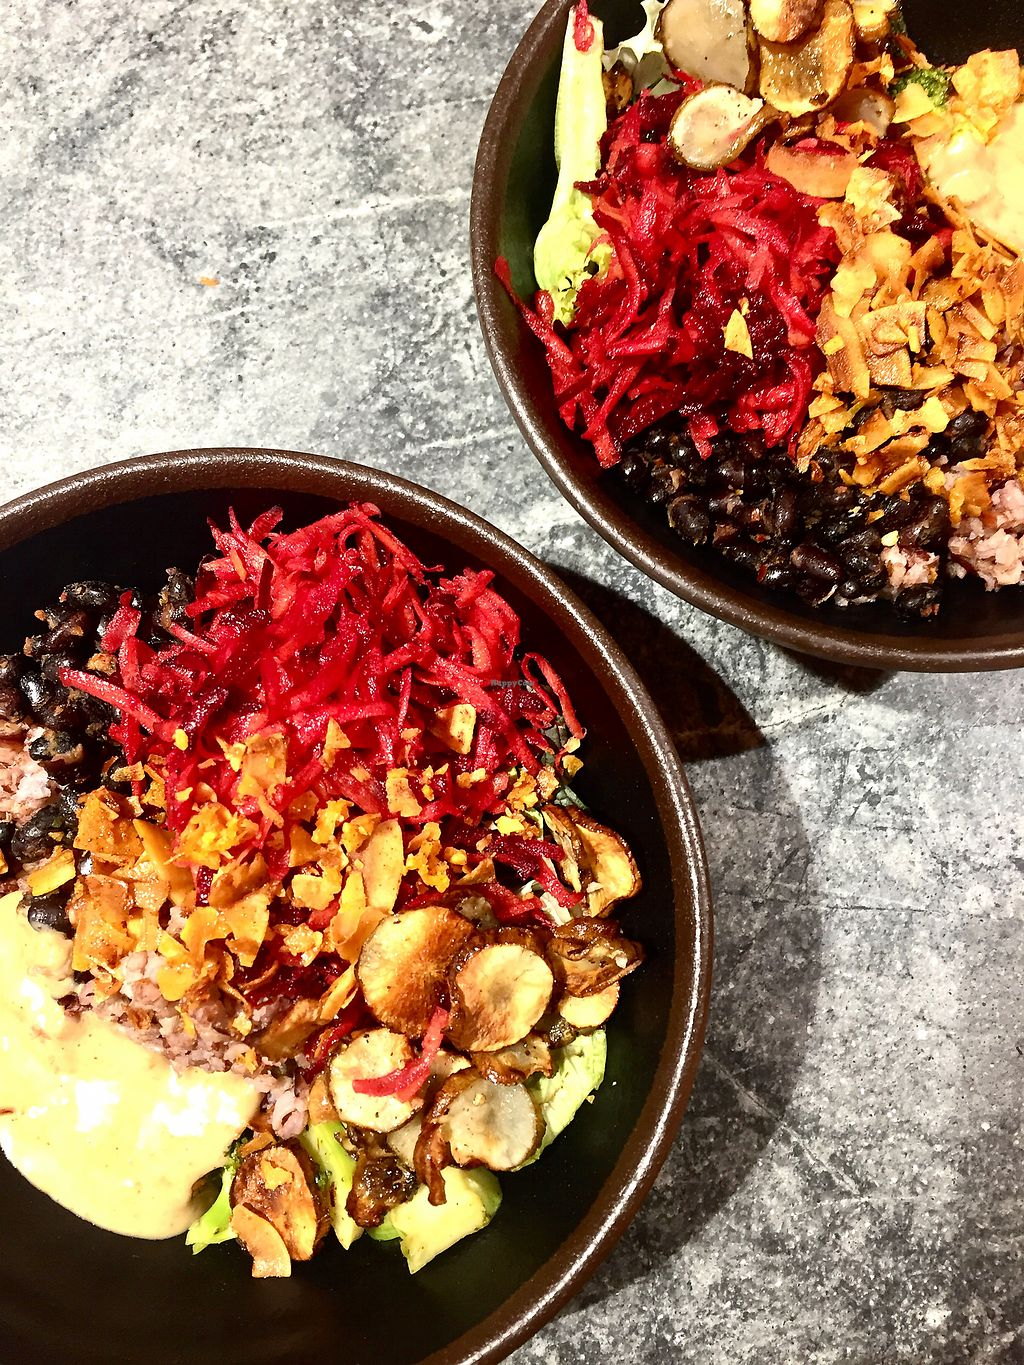 """Photo of Glo  by <a href=""""/members/profile/KatjaValentinaKramp"""">KatjaValentinaKramp</a> <br/>Winter bowl with black rice, beets, sweet potatoes etc <br/> February 3, 2018  - <a href='/contact/abuse/image/103098/354254'>Report</a>"""